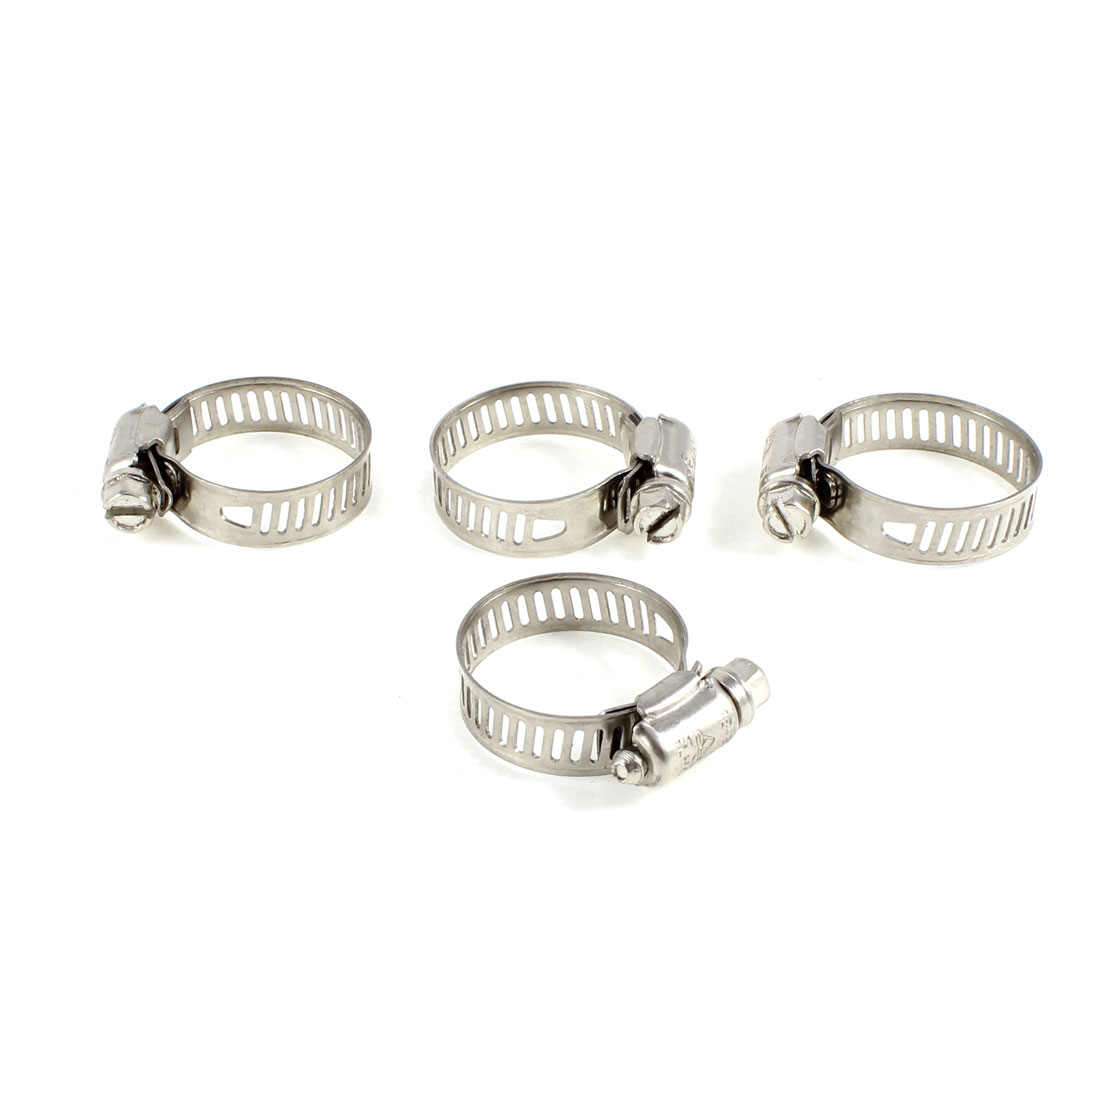 4 Pcs Adjustable Stainless Steel Worm Drive Hose Clips 18mm to 29mm